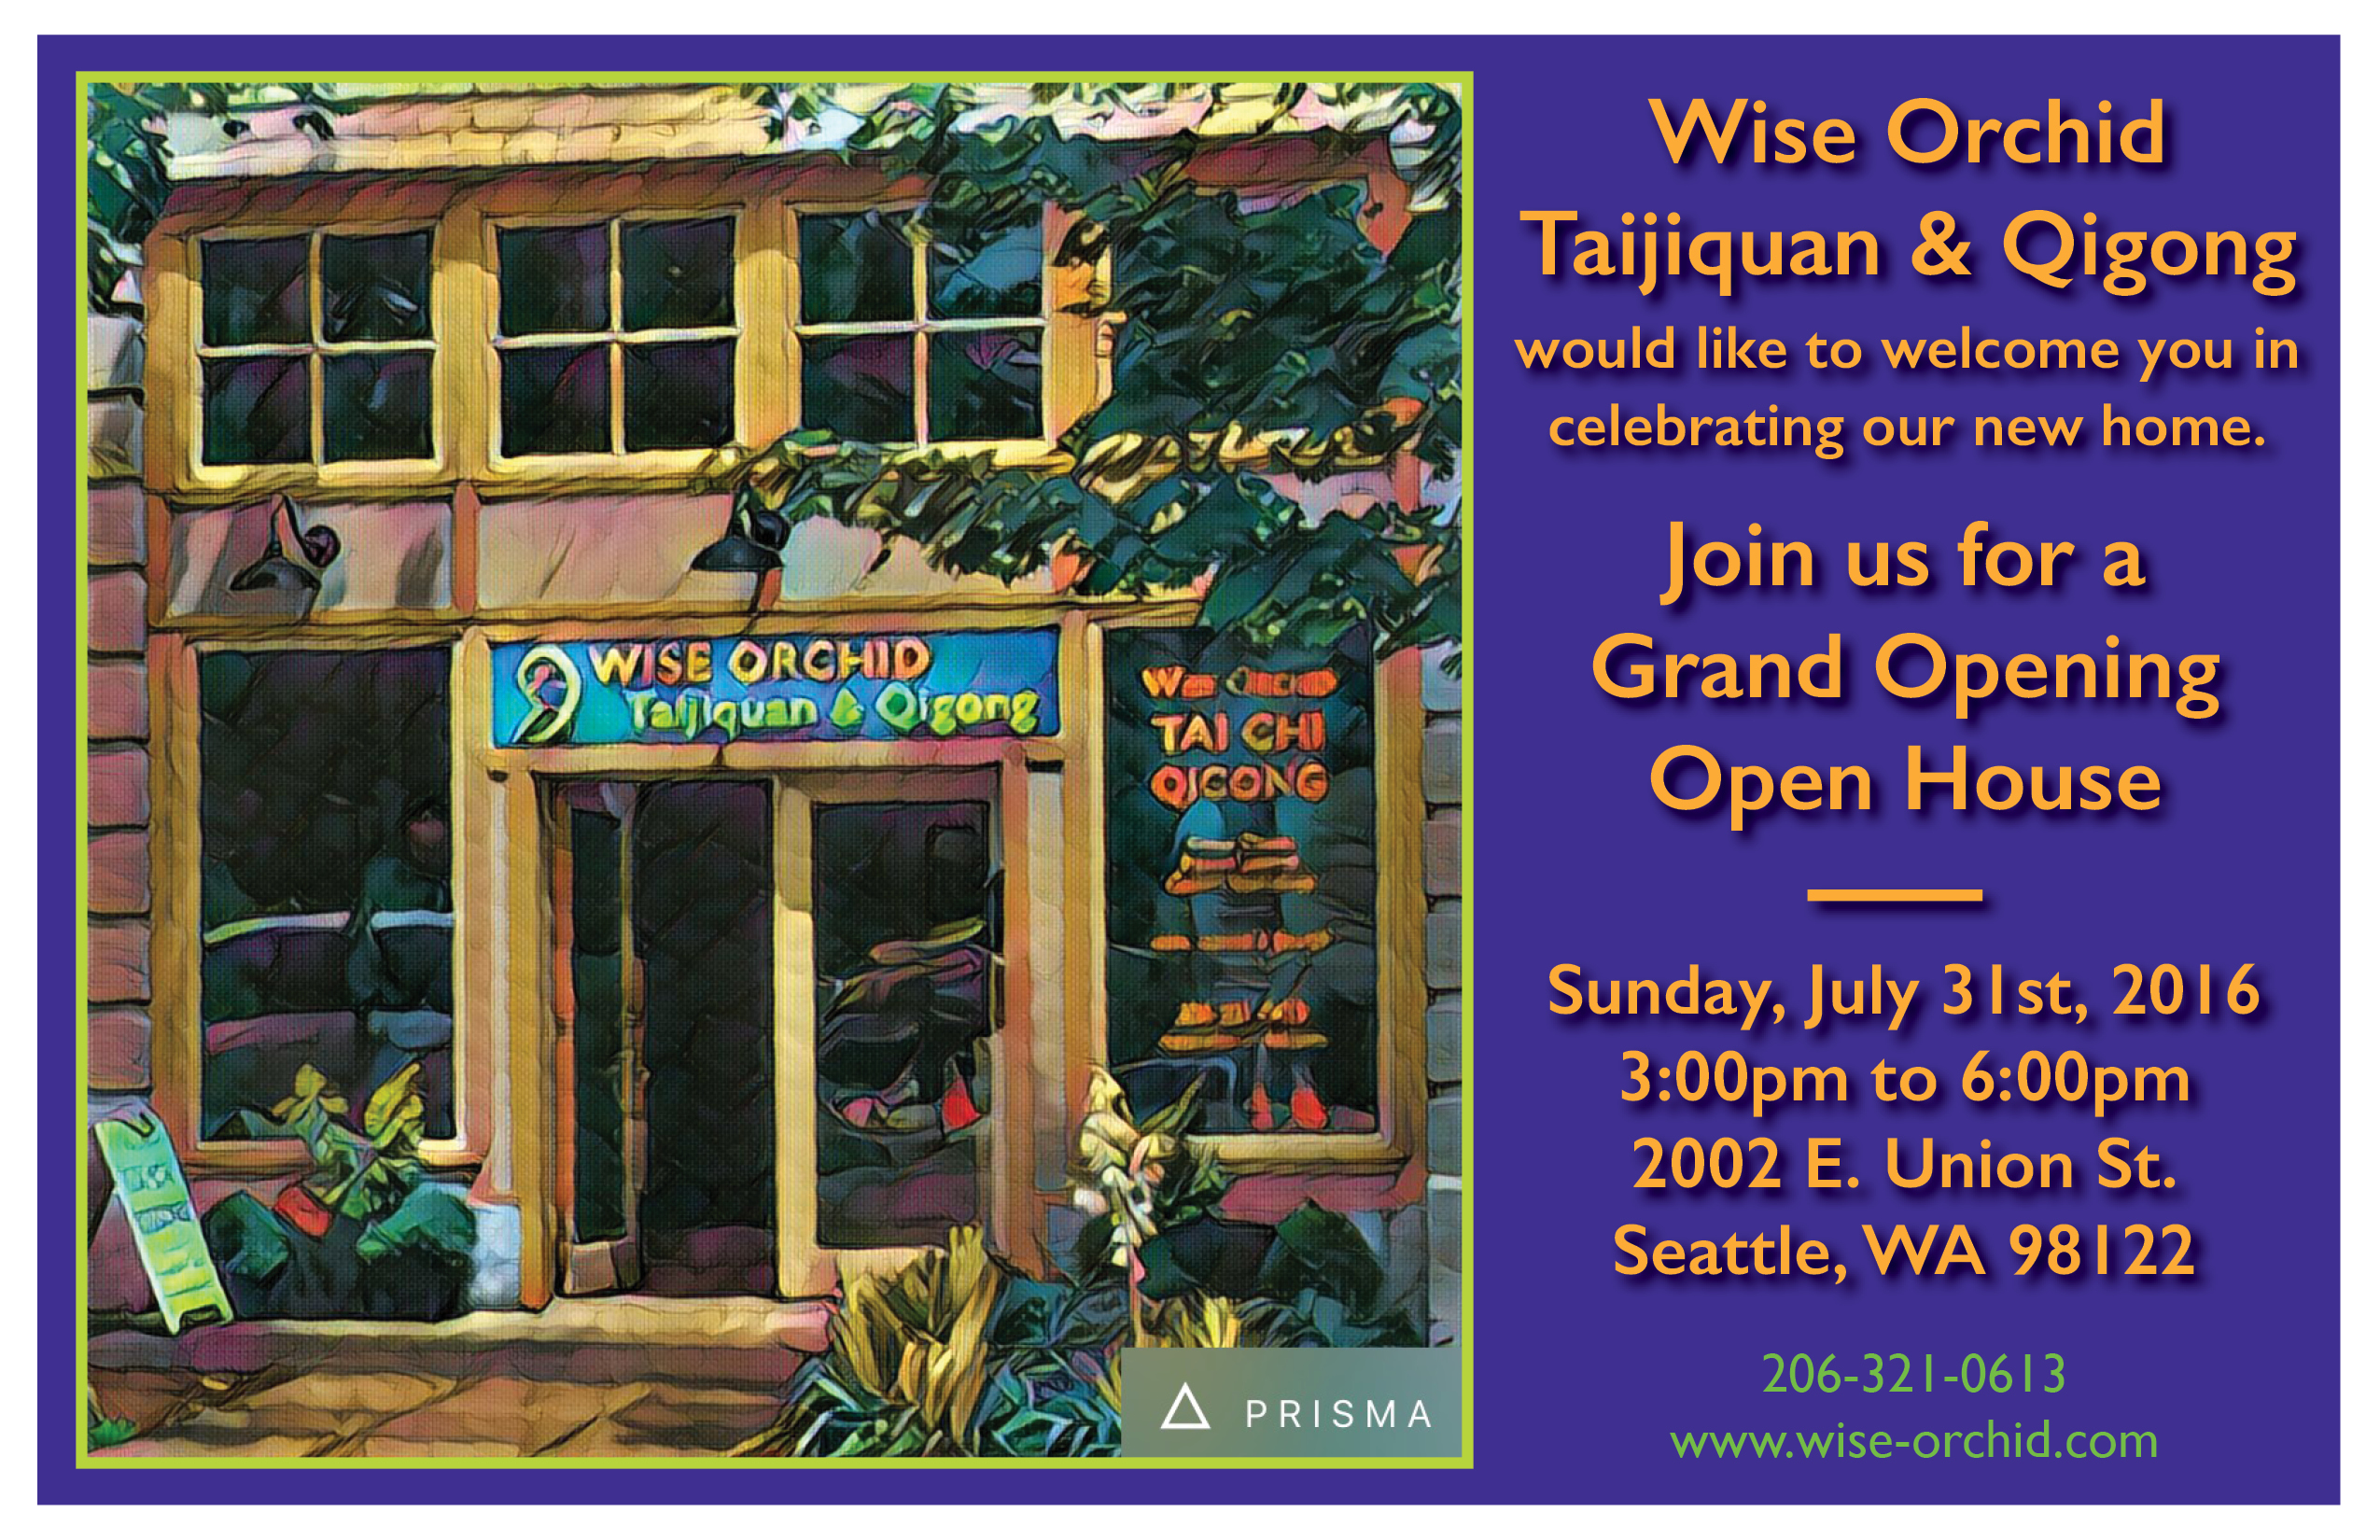 Grand Opening/Open House of New Home @ Wise Orchid Taijiquan & Qigong